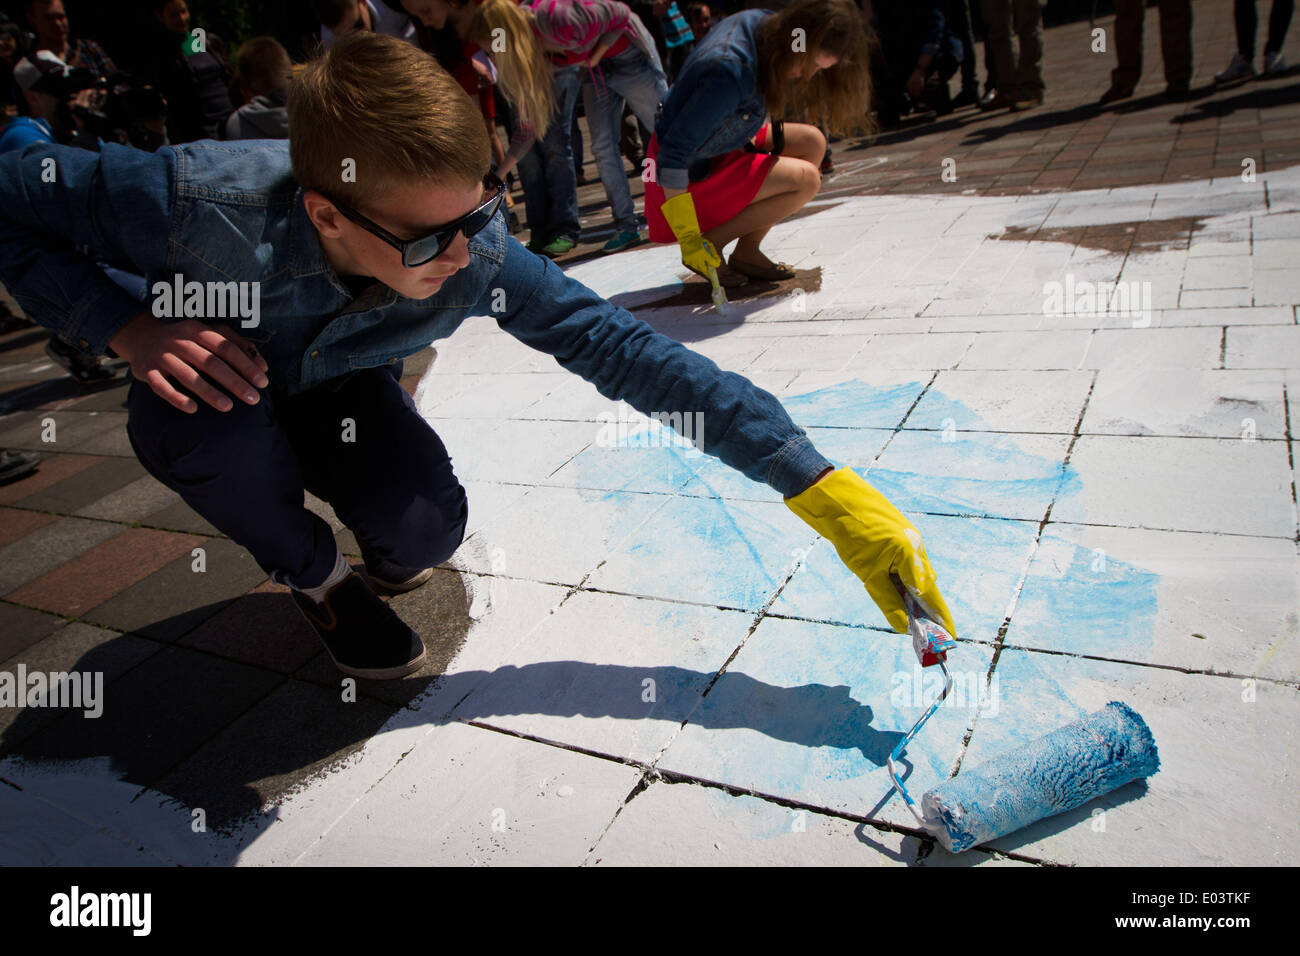 Kiev, Ukraine. 30th Apr, 2014. Pro-Ukrainian activists draw a giant map of Ukraine with marked territory which can be lost in result of separatist's activity, during their instalation in front of Parliament building in Kiev, Ukraine, 30 April 2014. Armed separatists seized more government buildings in eastern Ukraine on 30 April, as Russian President Vladimir Putin threatened measures against Western companies operating in Russia if the United States and European Union imposed more sanctions. In Luhansk, a city of almost half a million people close to the Russian border, armed militants took - Stock Image